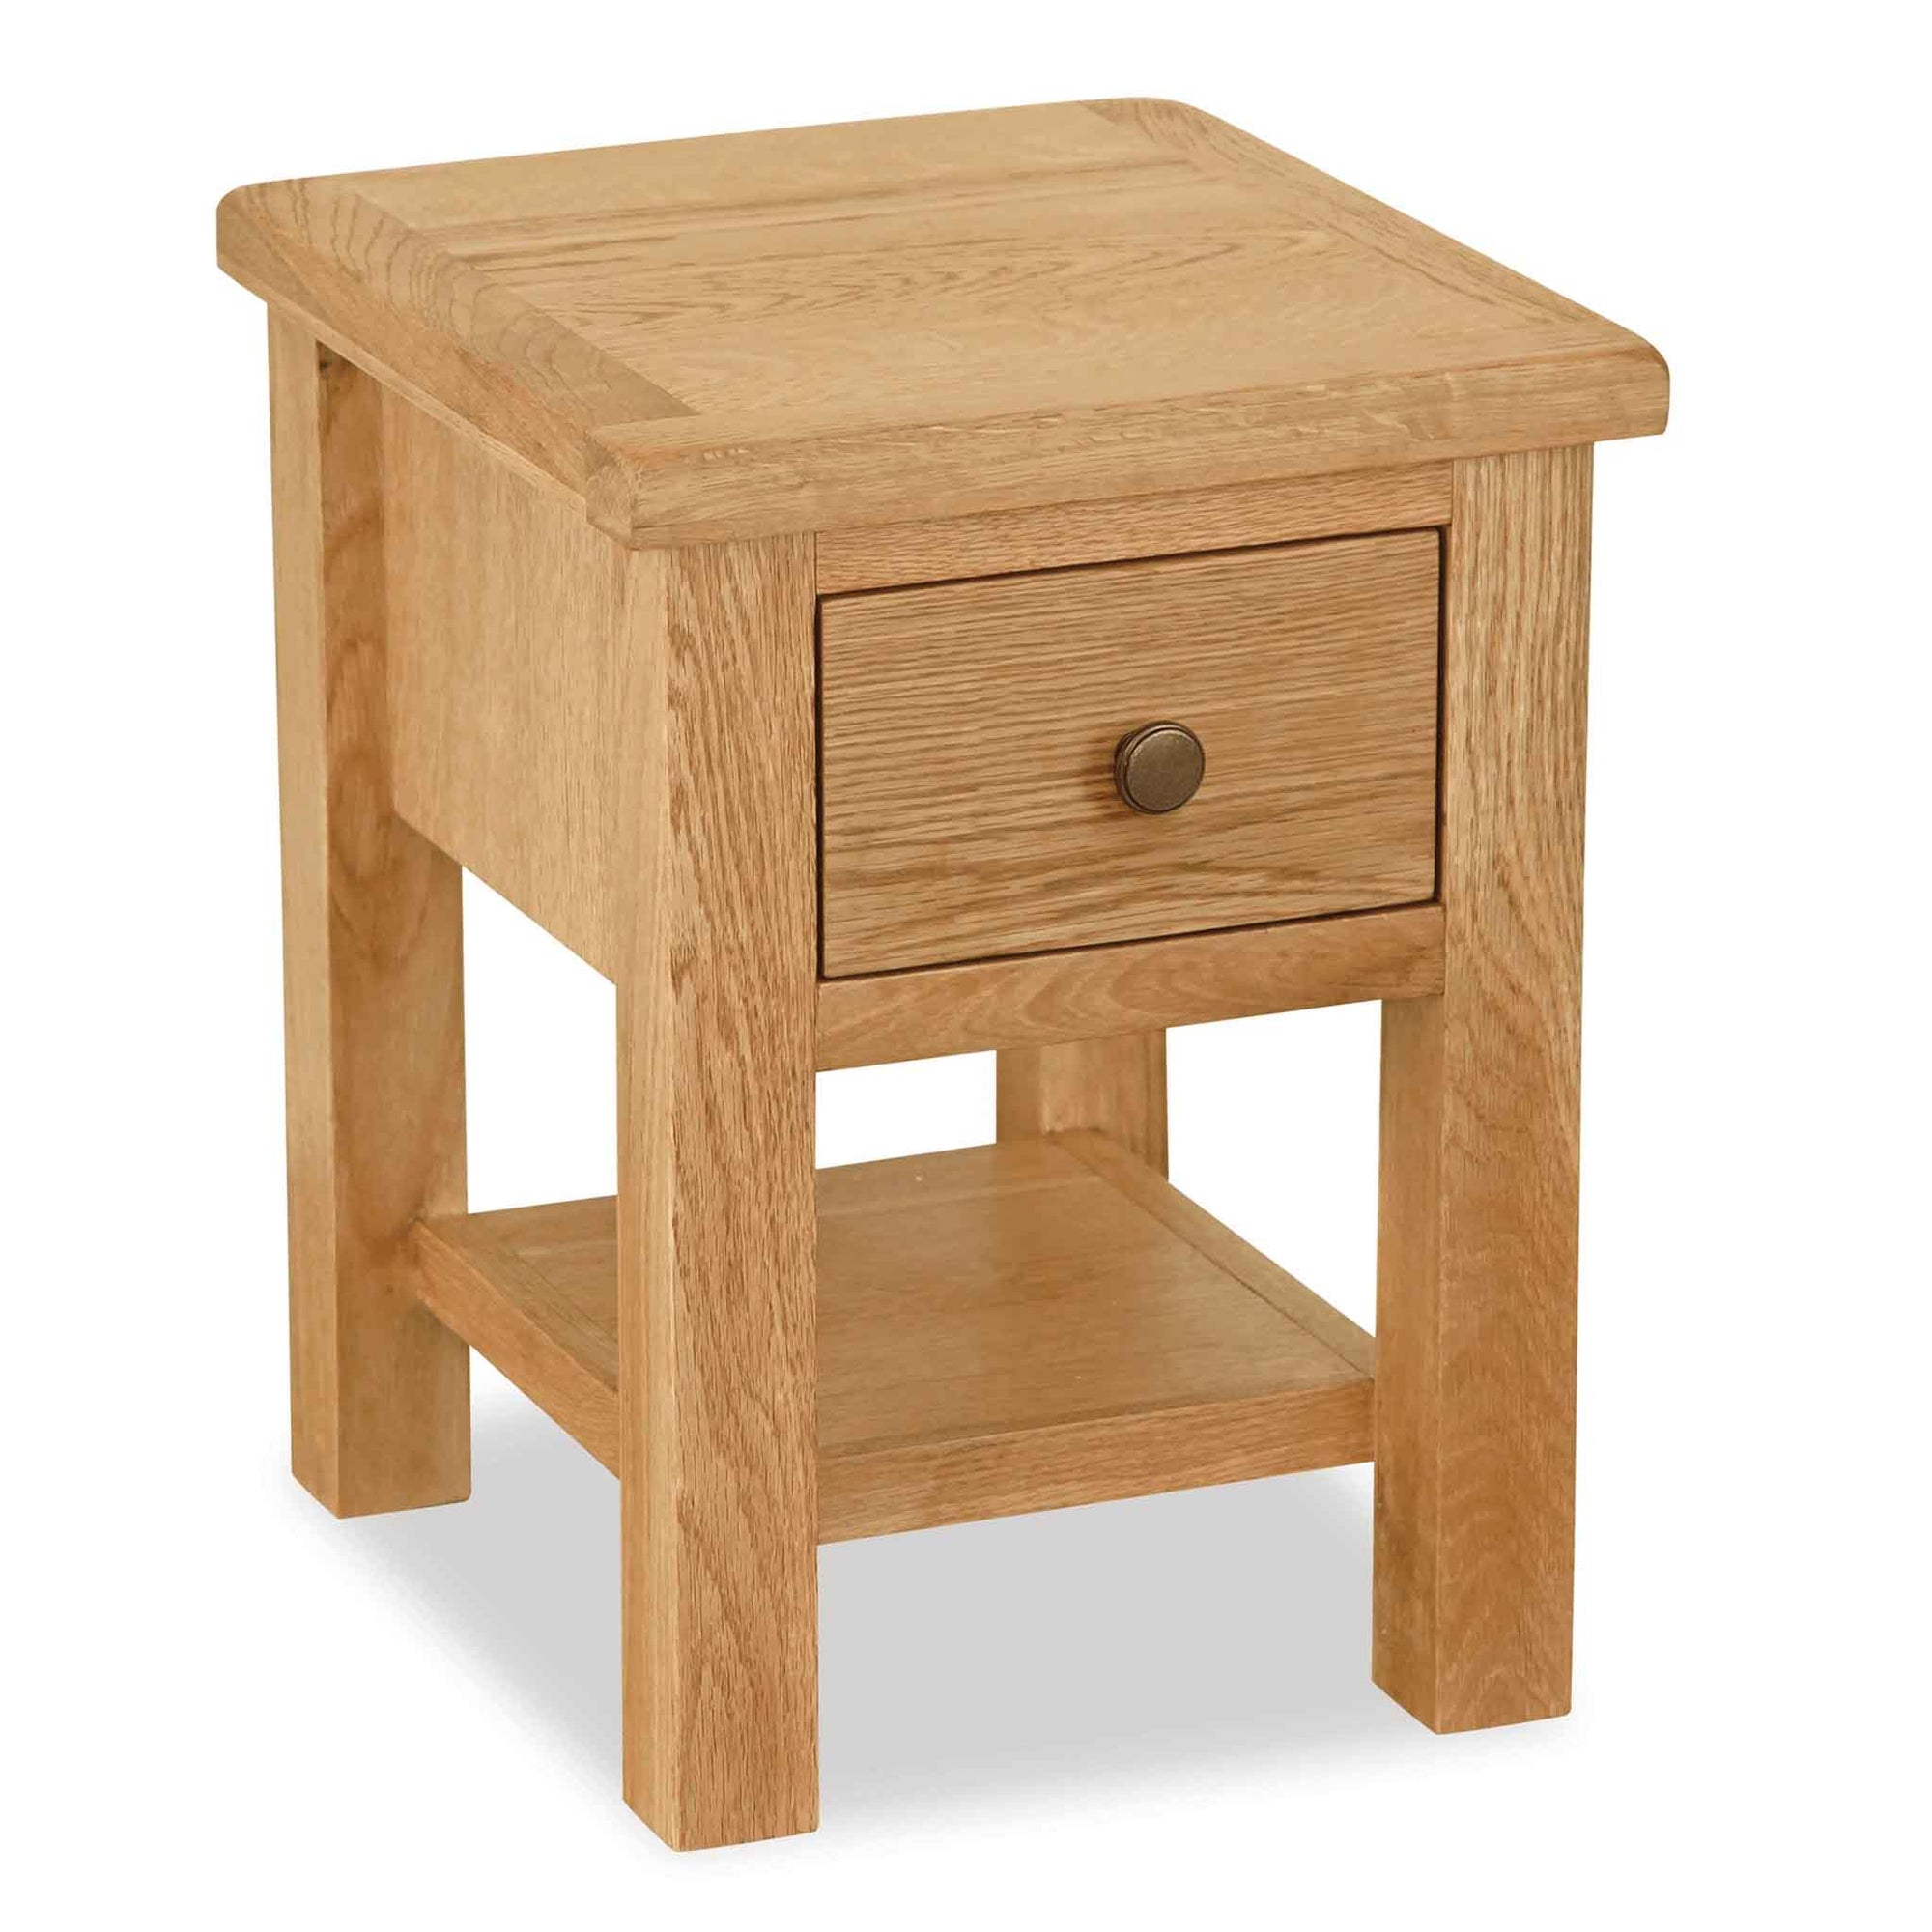 The Cotswold Oak Side Lamp Table from Roseland Furniture